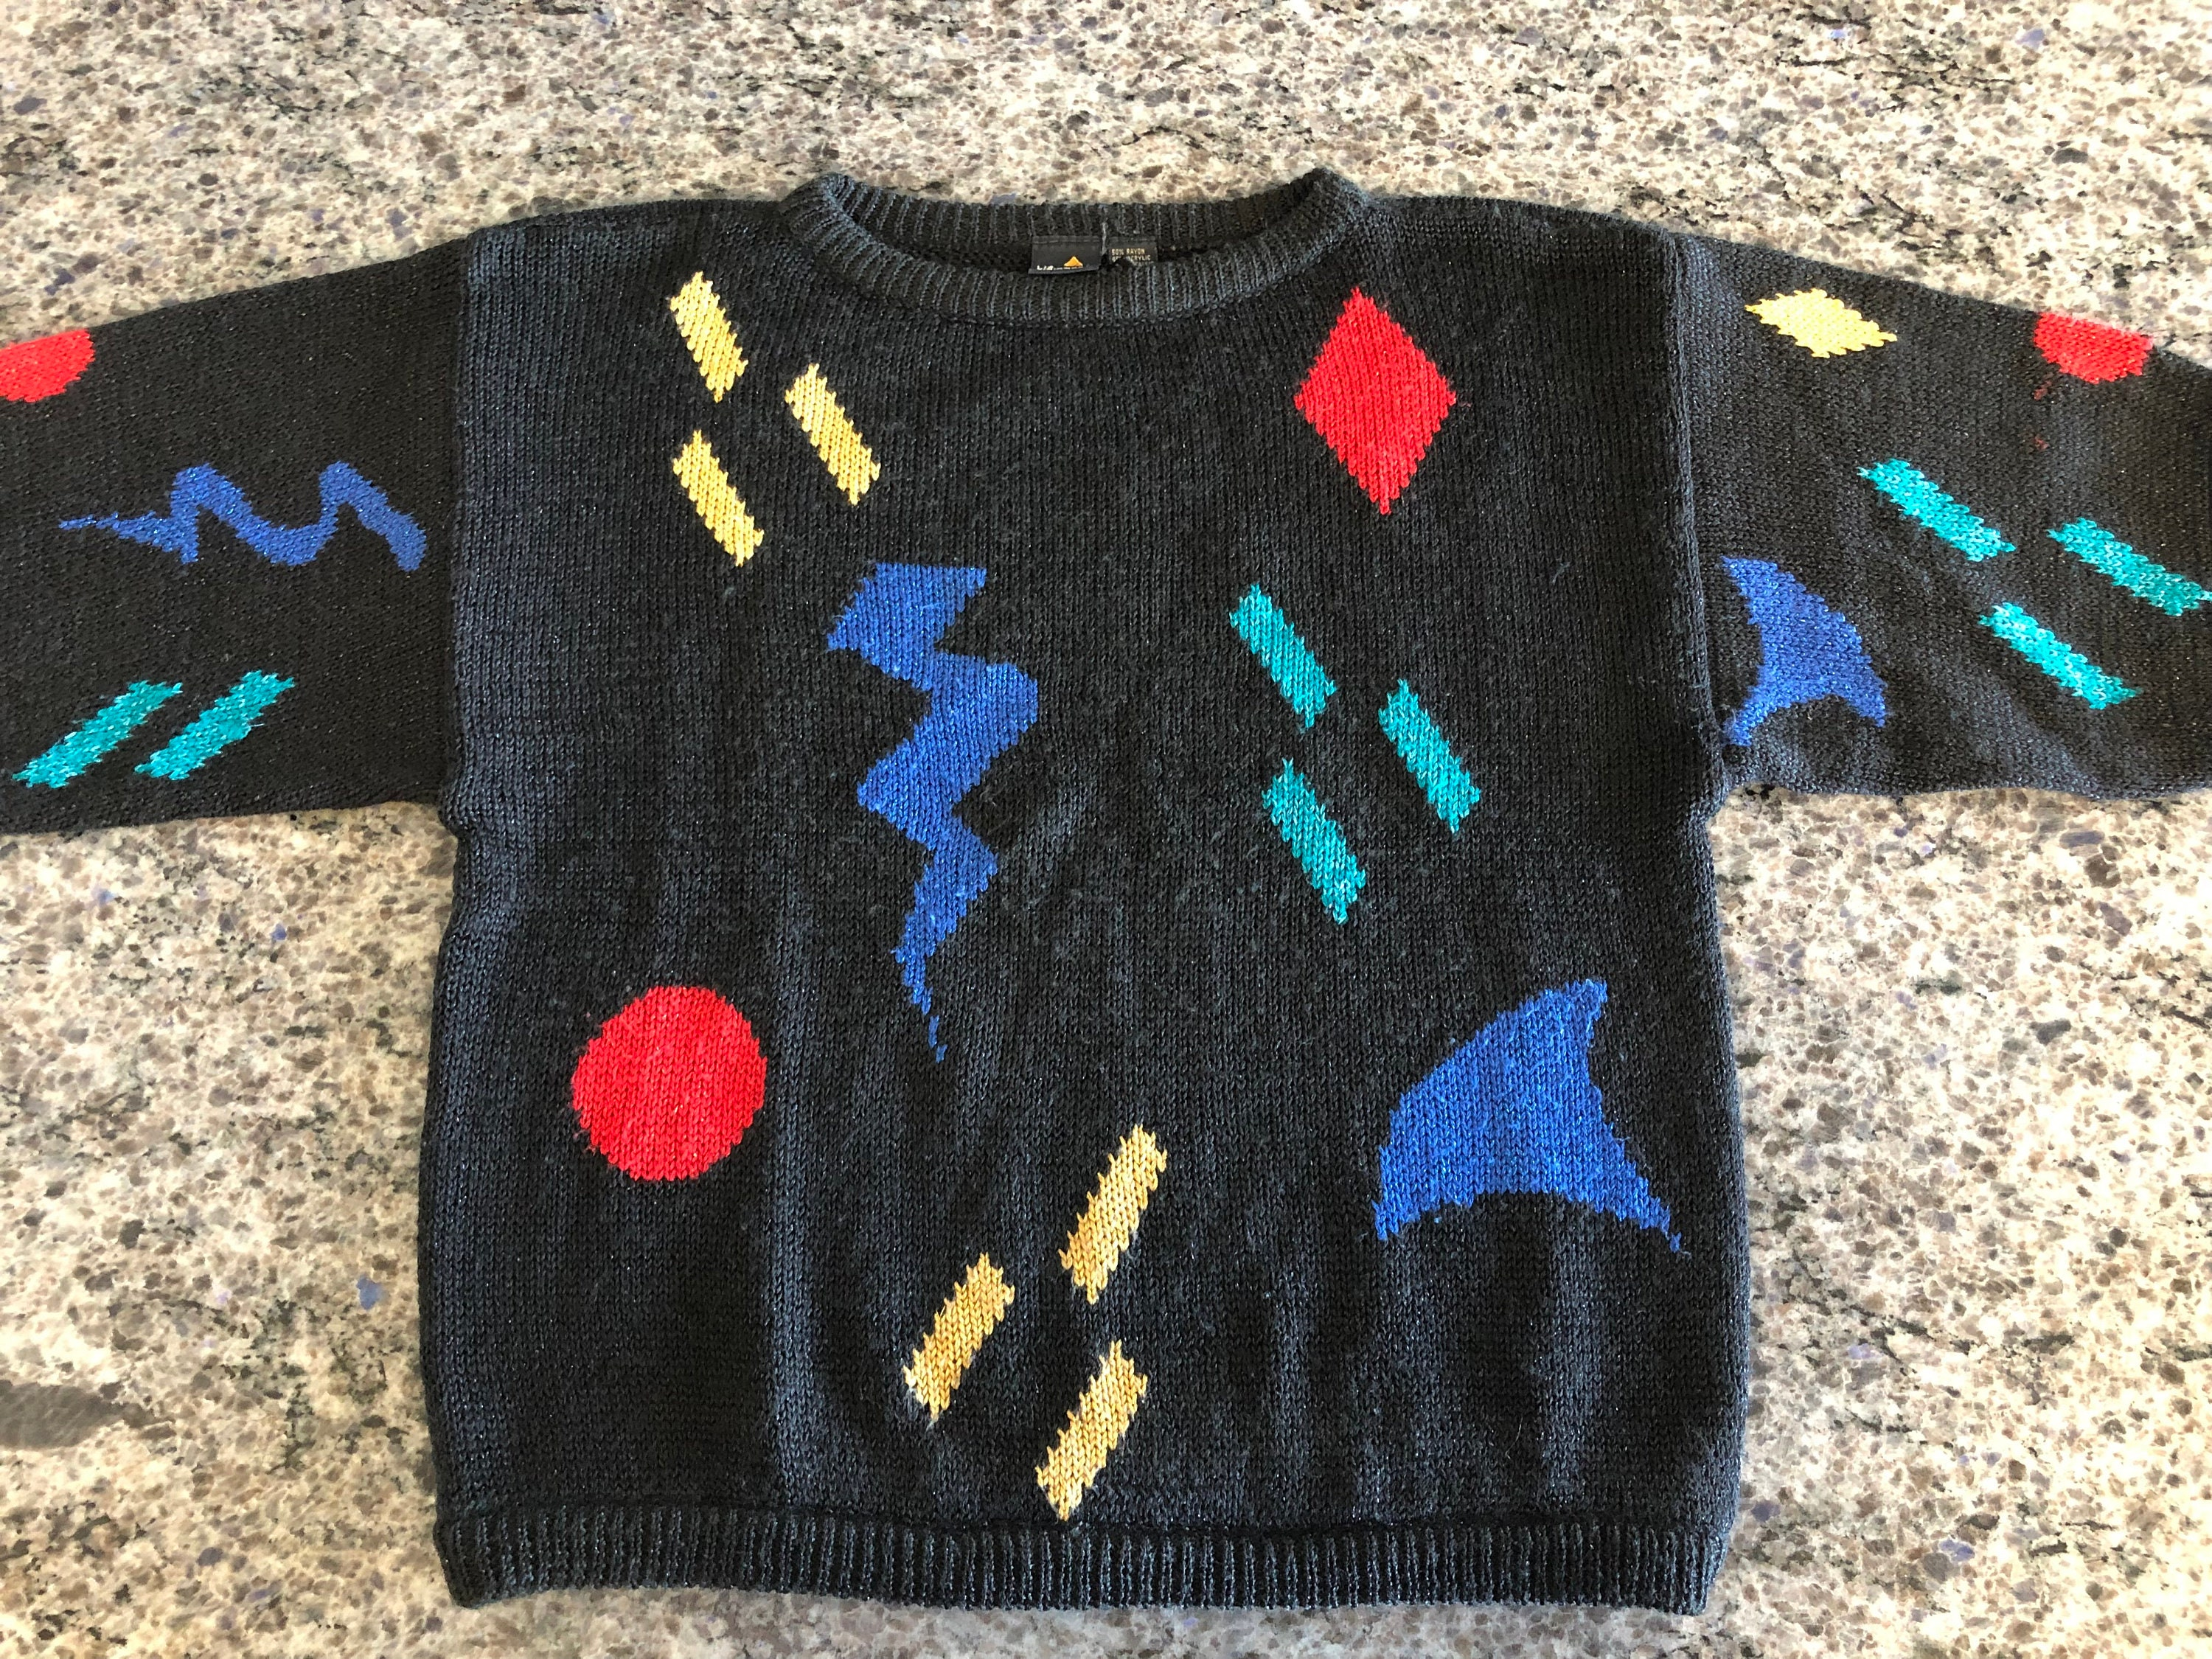 80s Sweatshirts, Sweaters, Vests | Women Vintage 1980s Liz Claiborne Black Geometric Print Short Sleeve Cropped Sweater Made in Hong Kong Size Large - Womens Black Sweater, 80s $24.00 AT vintagedancer.com